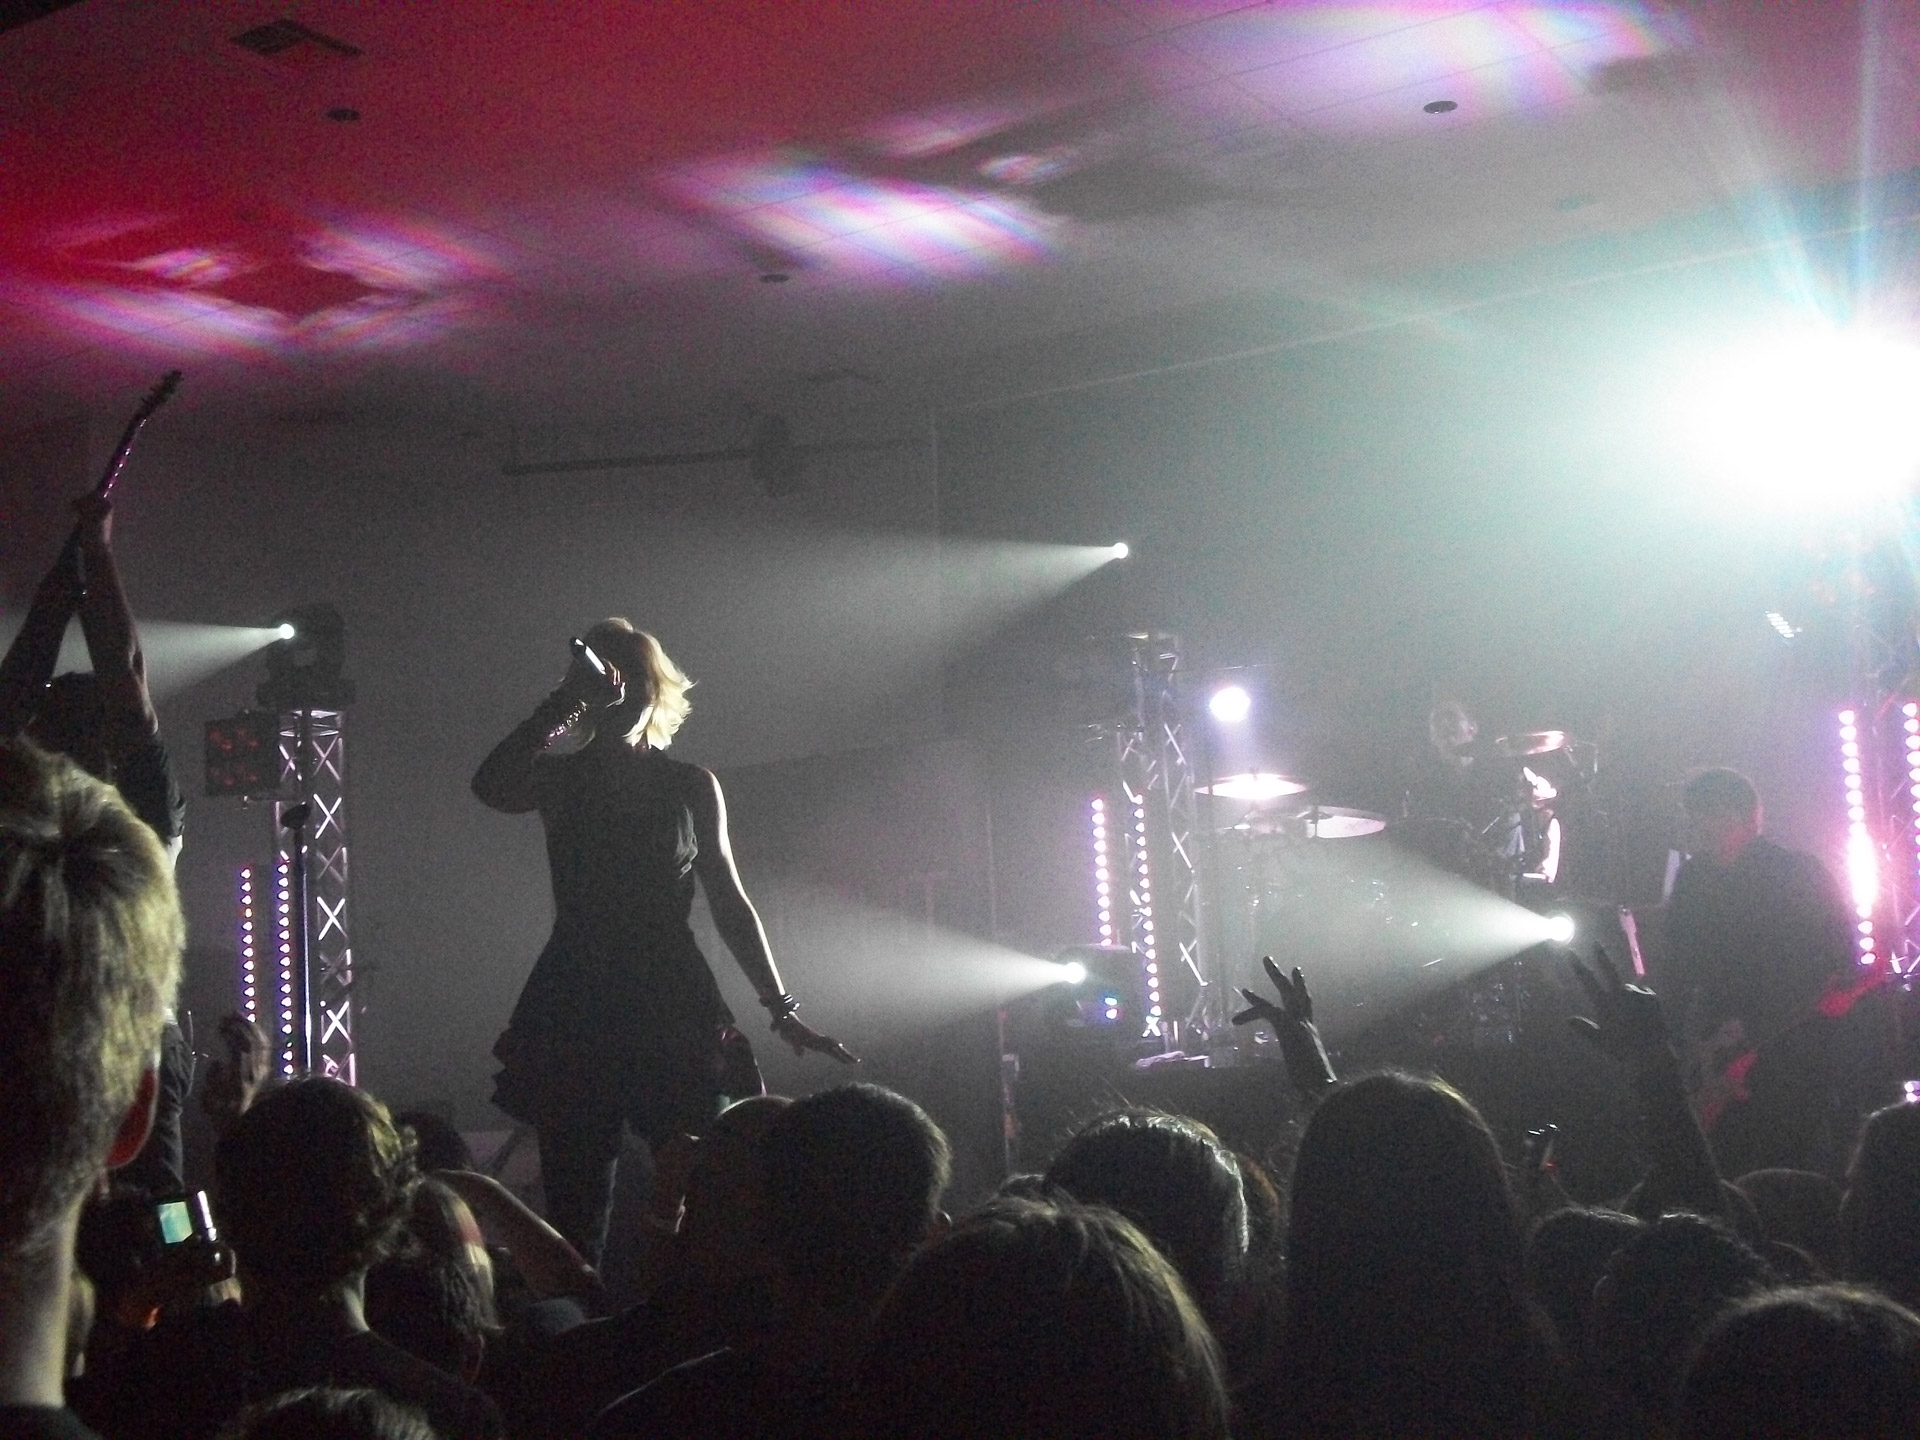 Full color photo of a rock band on stage.  Female vocalist featured prominently in silhouette while the crowd watches on.